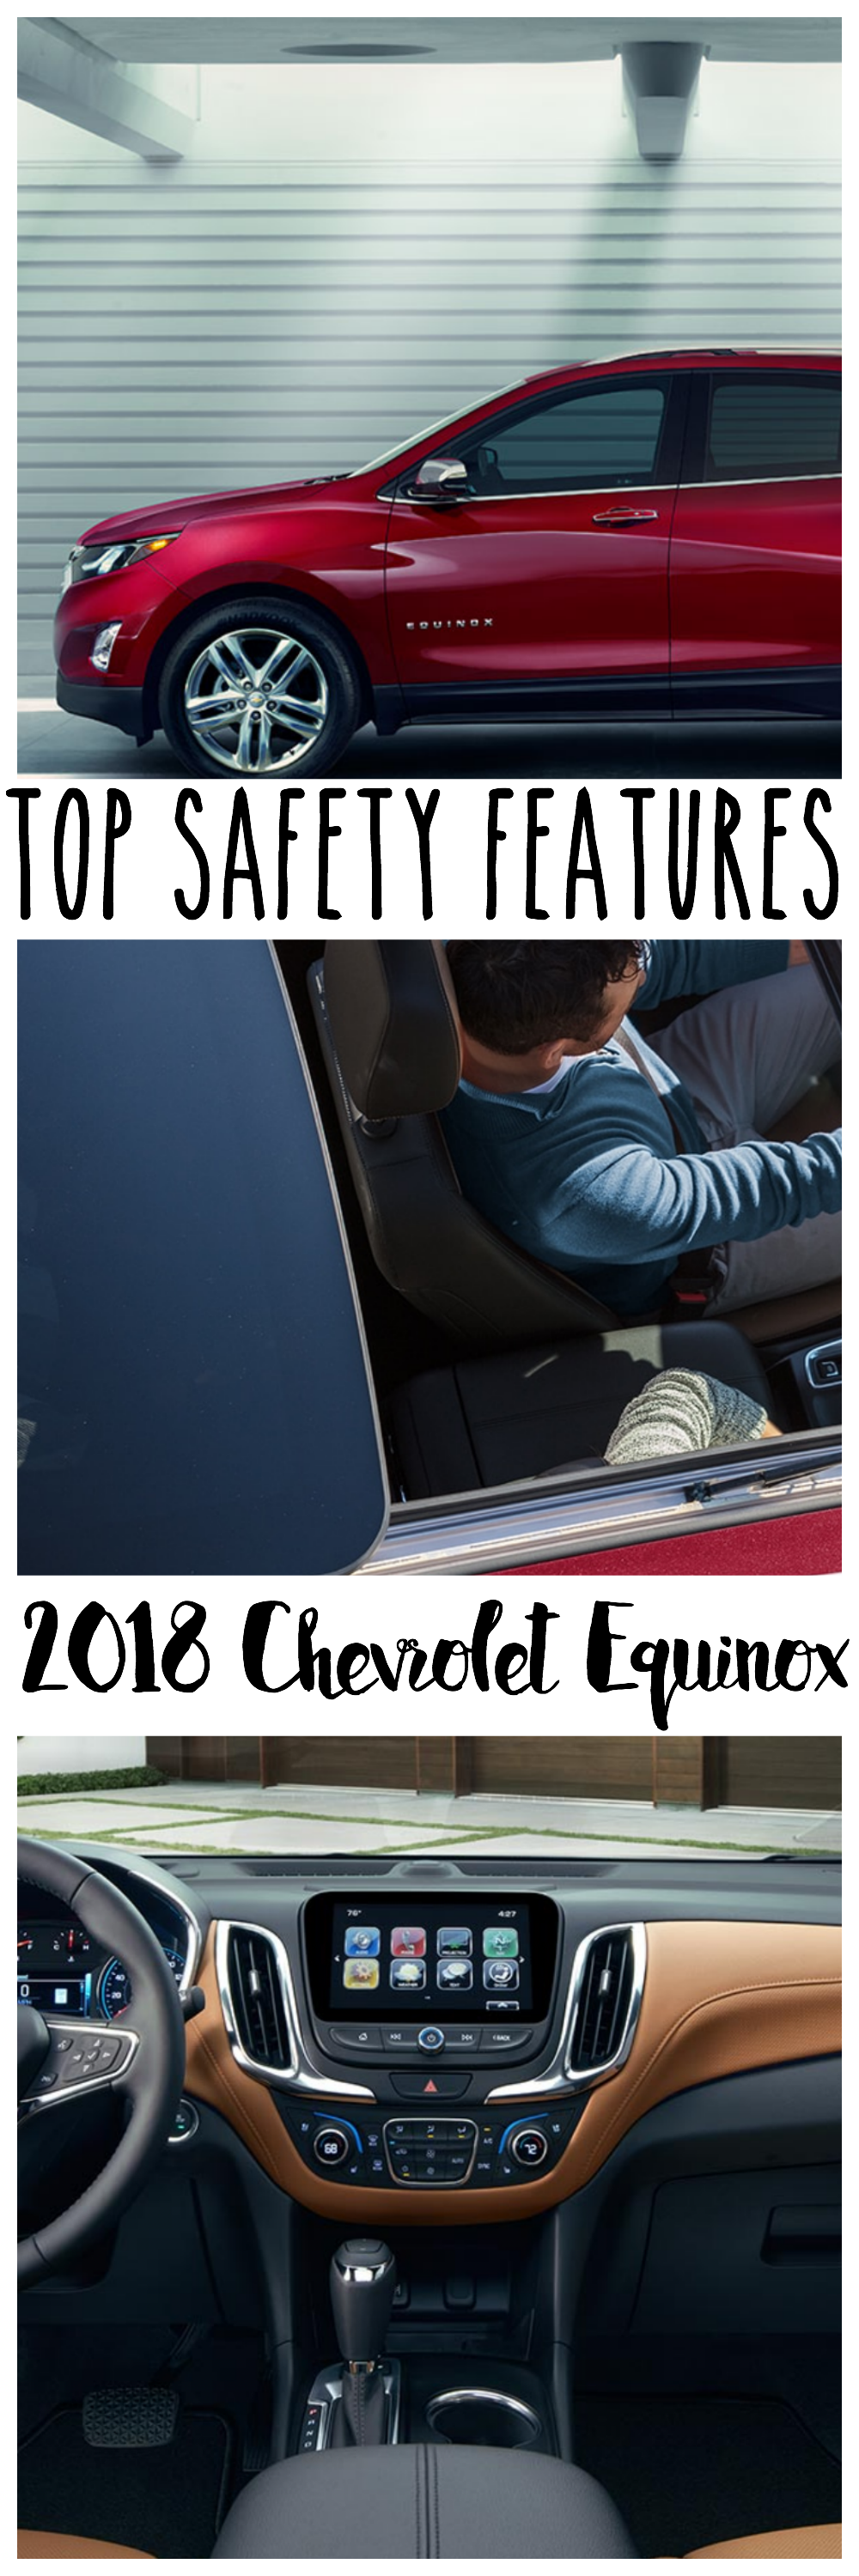 Safety features are important. Here are what I think are the top safety features of the 2018 Chevrolet Equinox.